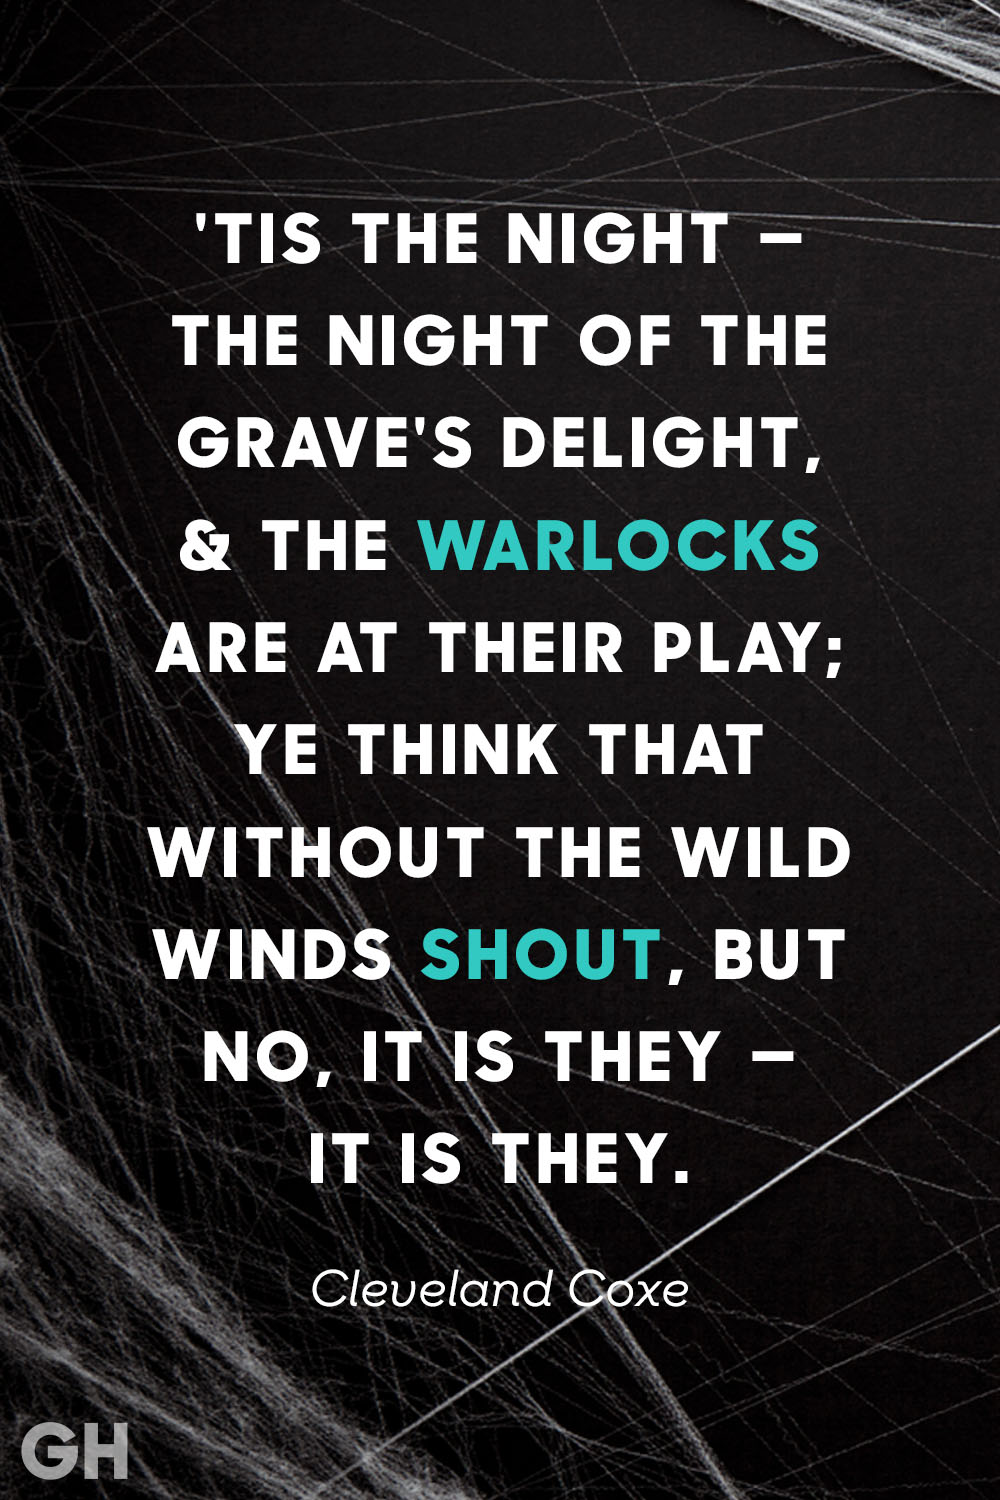 Puritan Quotes All Hallows Eve Puritan Quotes Picture